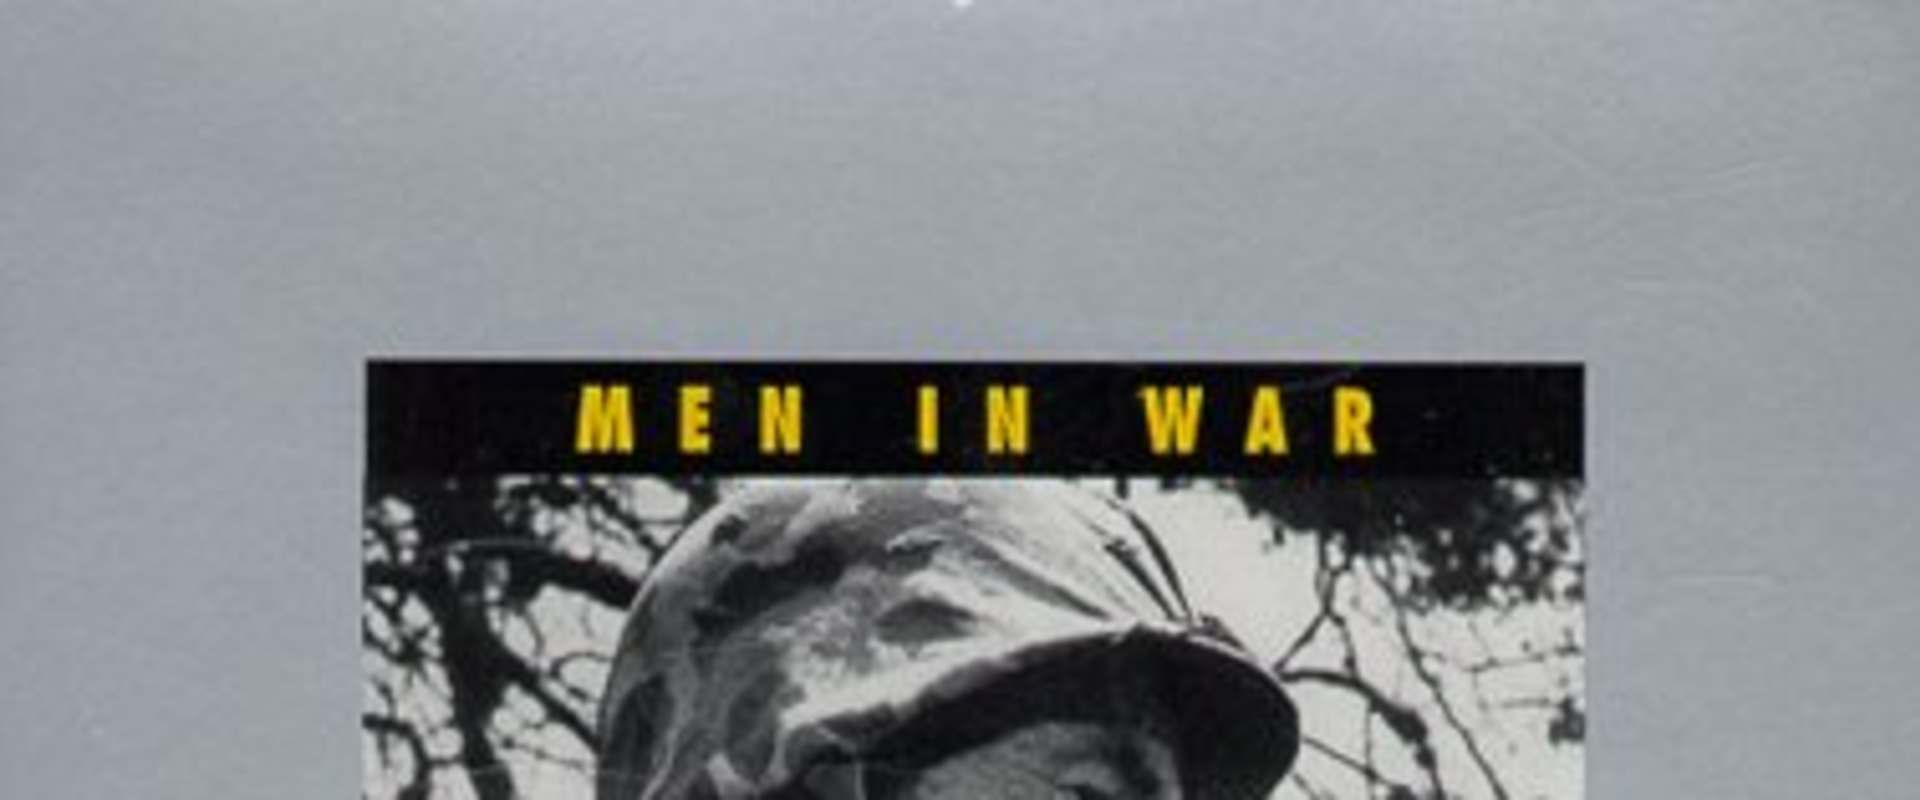 Men in War background 1